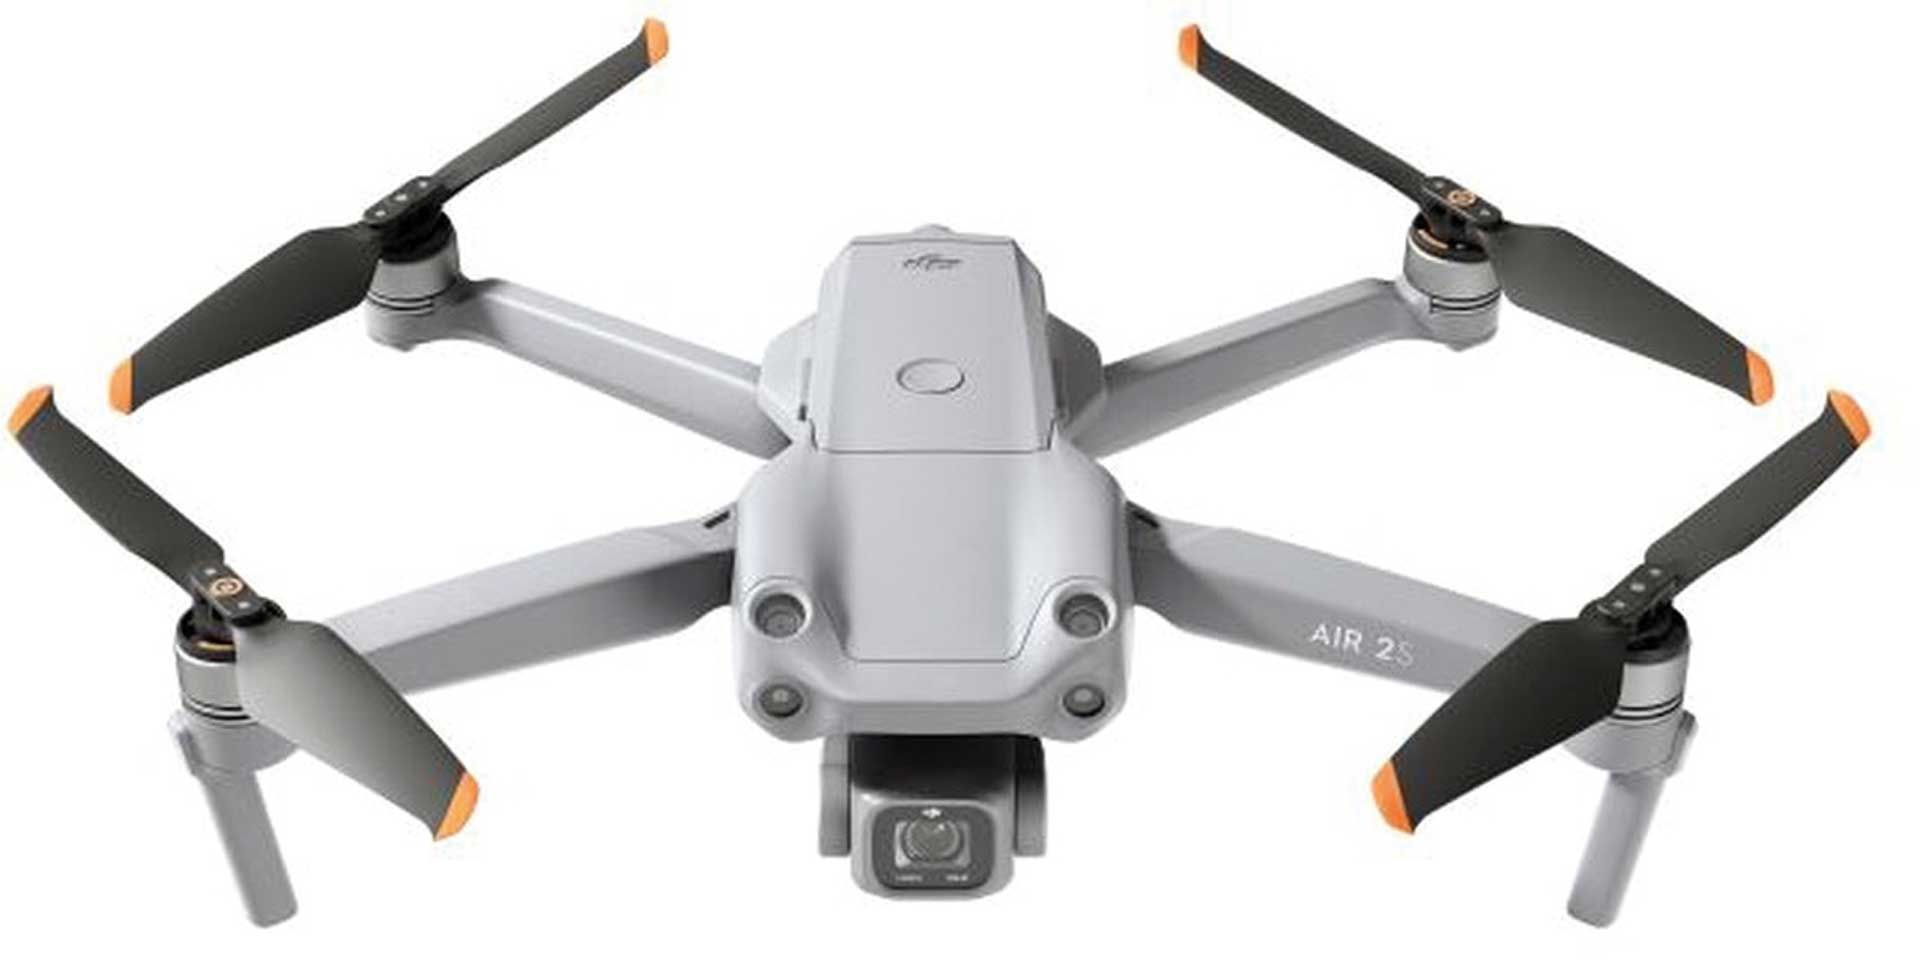 DJI AIR 2S Drohne 5,4K Video